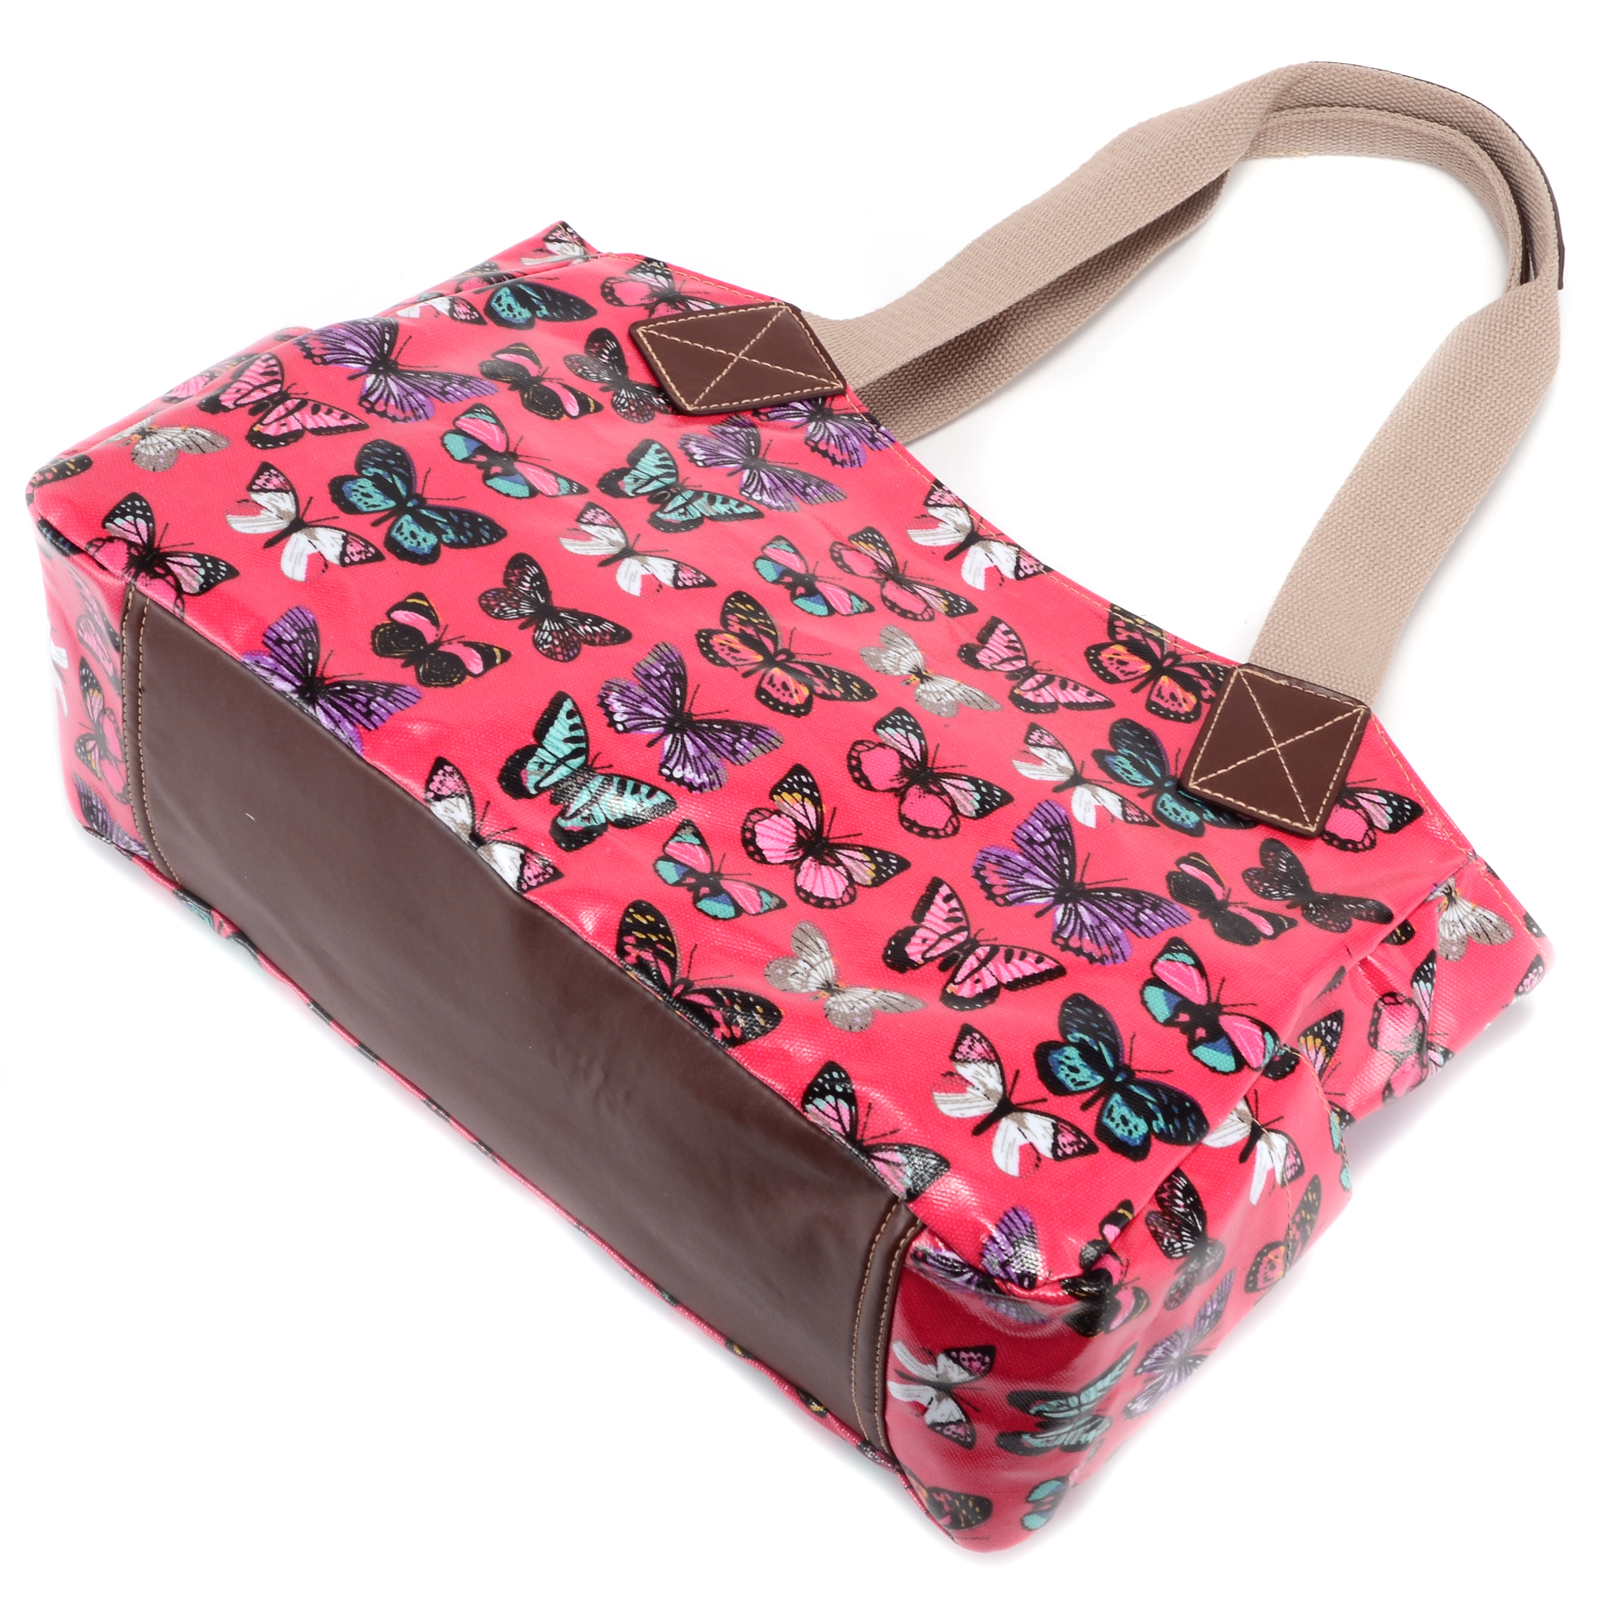 Womens butterfly print designer oilcloth shoulder bag tote for Au maison oilcloth uk